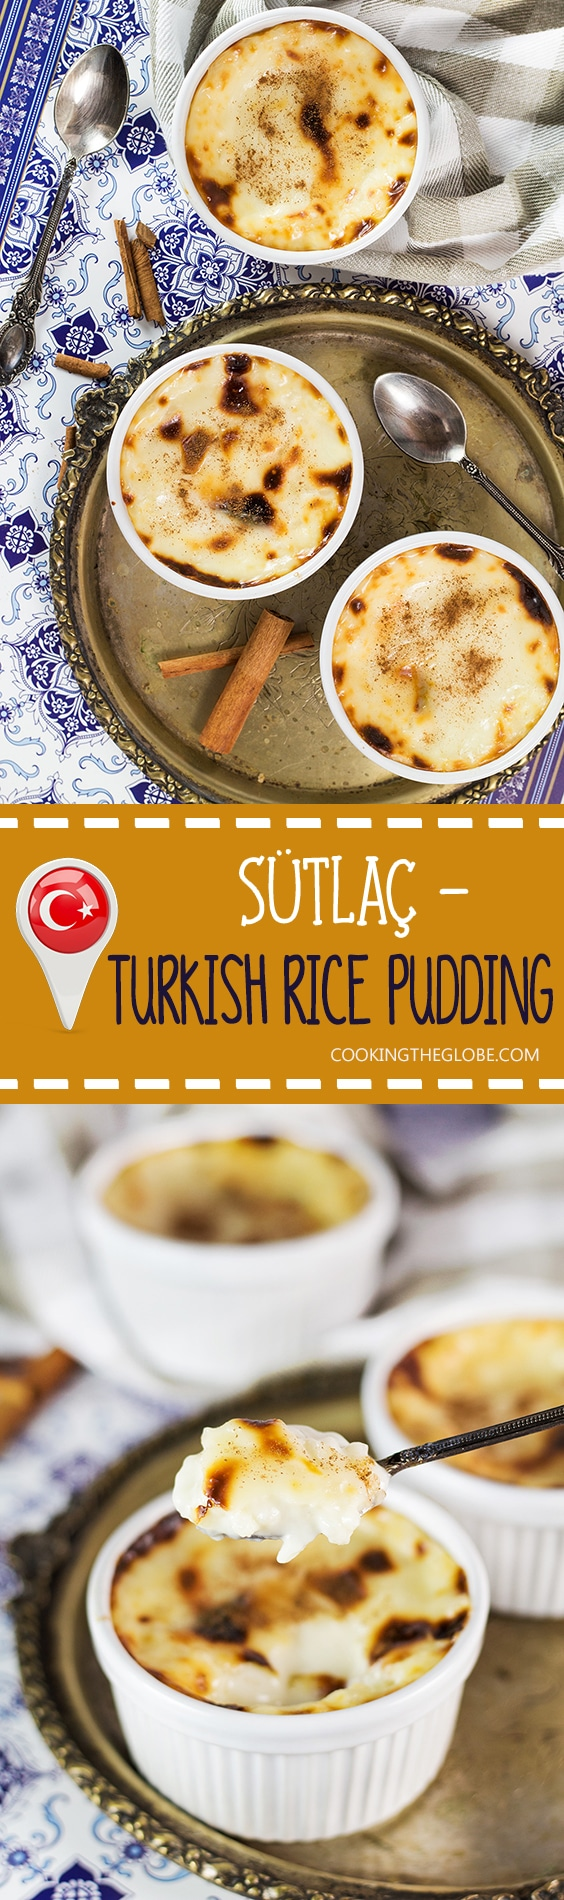 Creamy, rich, and melting in your mouth, this Turkish Rice Pudding (Sütlaç) can be served either warm or chilled. A perfect light dessert for any time of the day! | cookingtheglobe.com